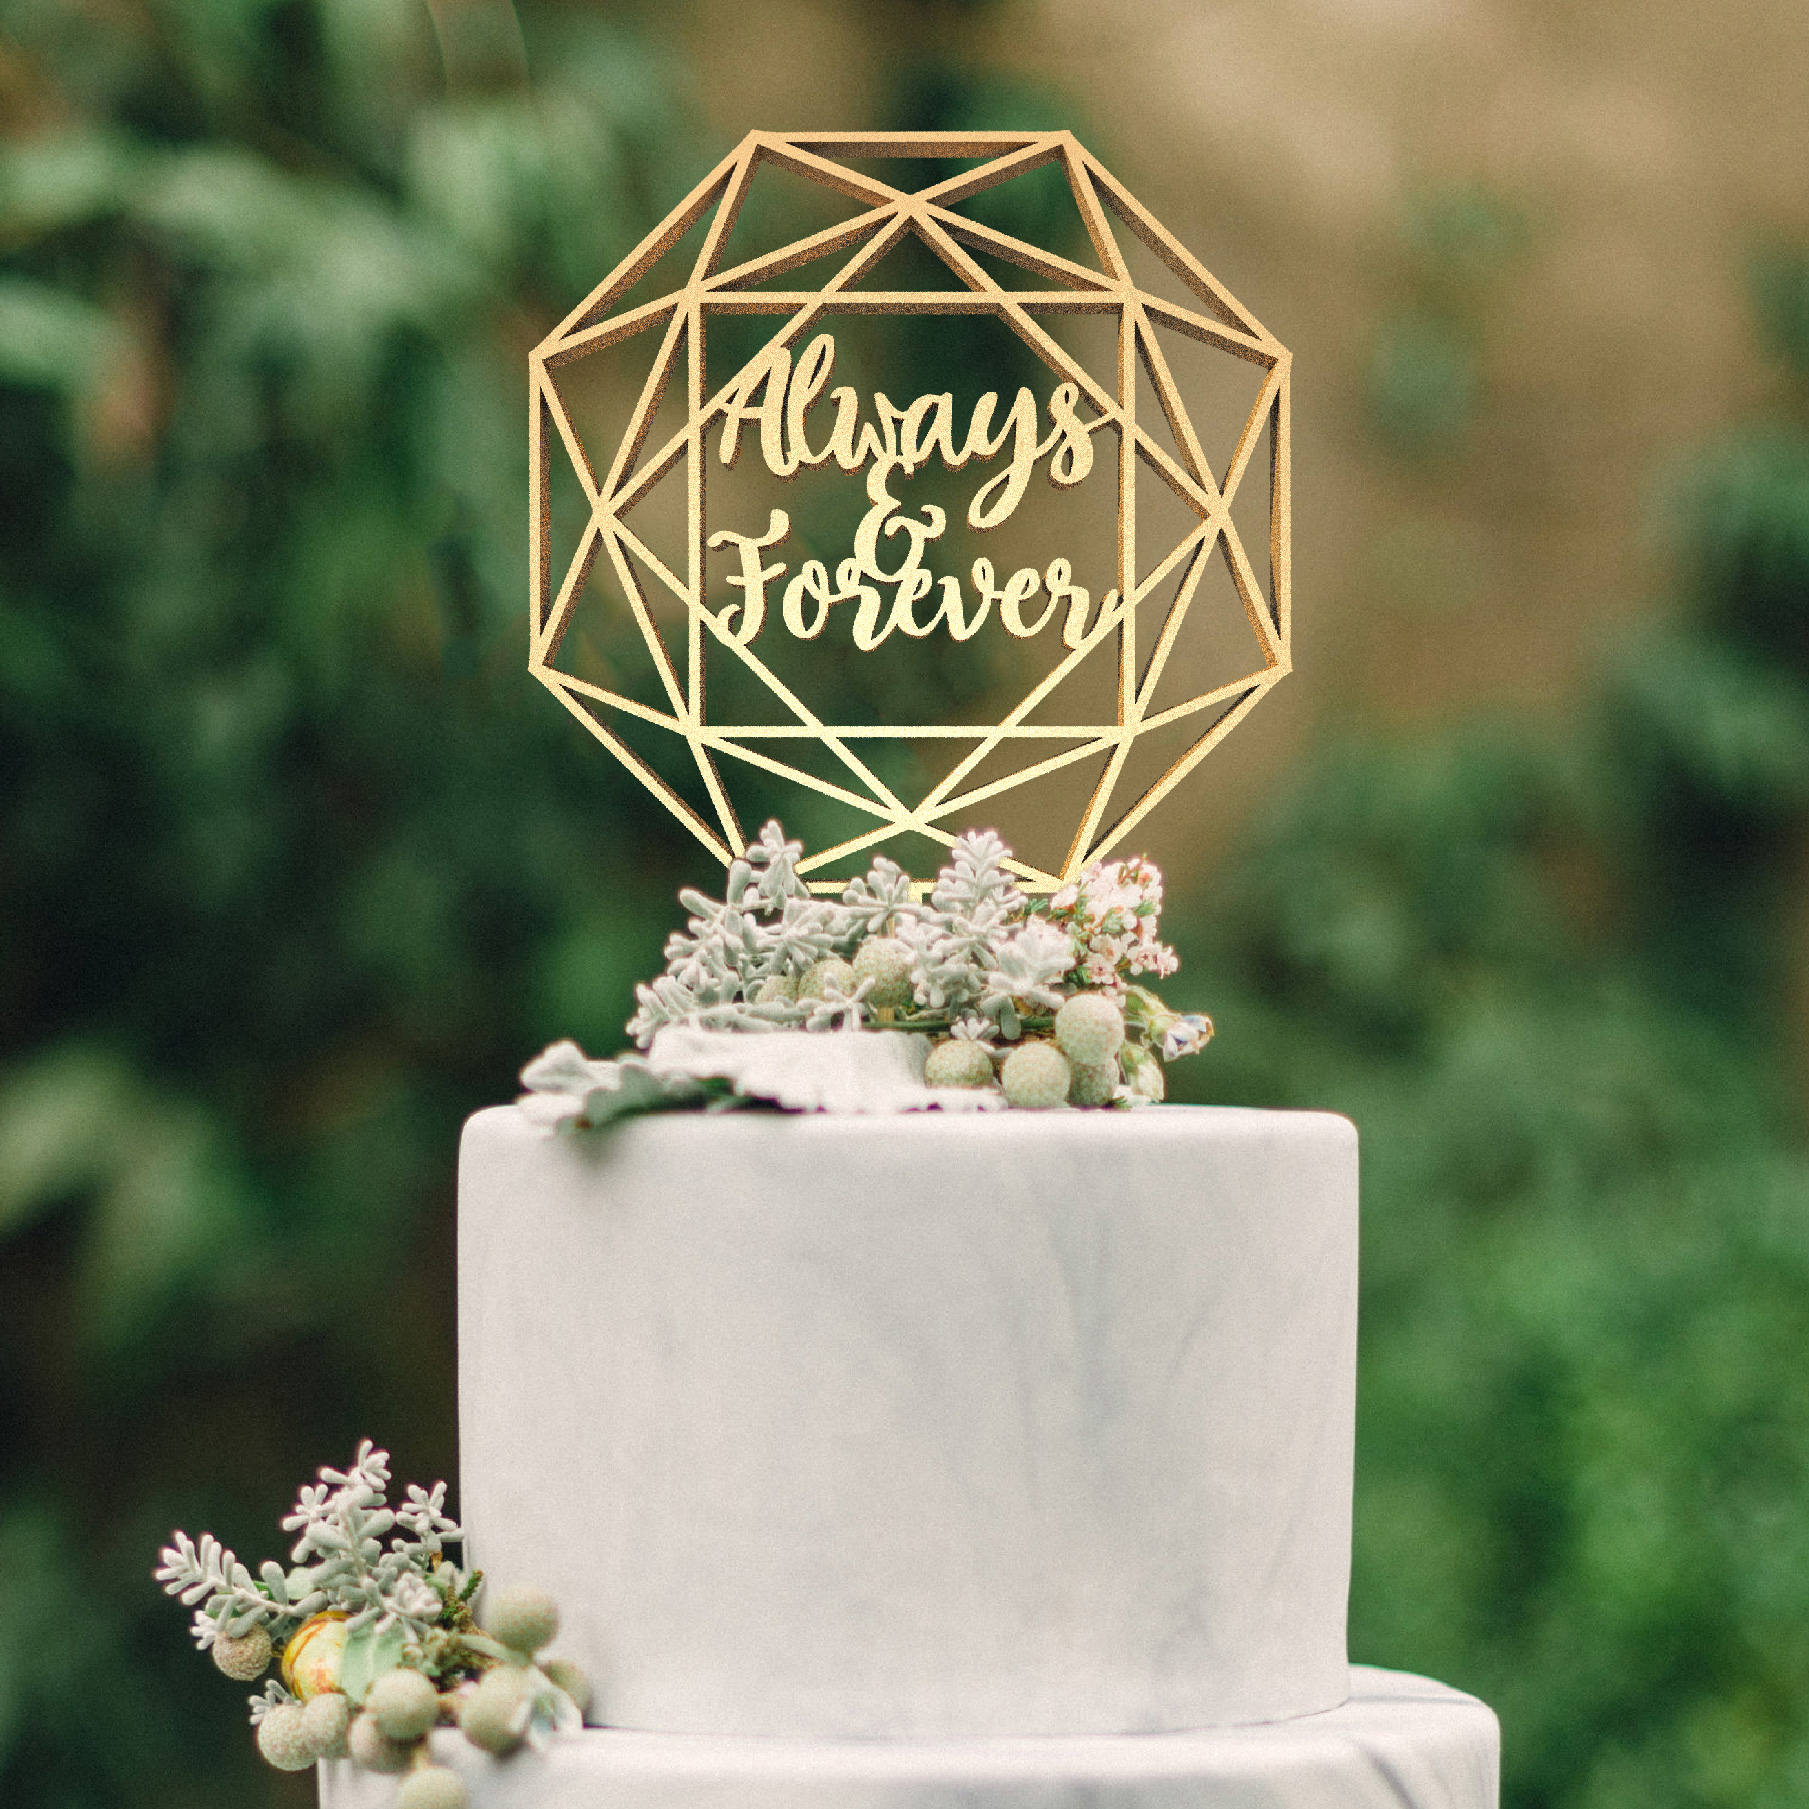 Mirror champagne always and forever wedding cake topper globalwedding mirror champagne always and forever wedding cake topper junglespirit Gallery